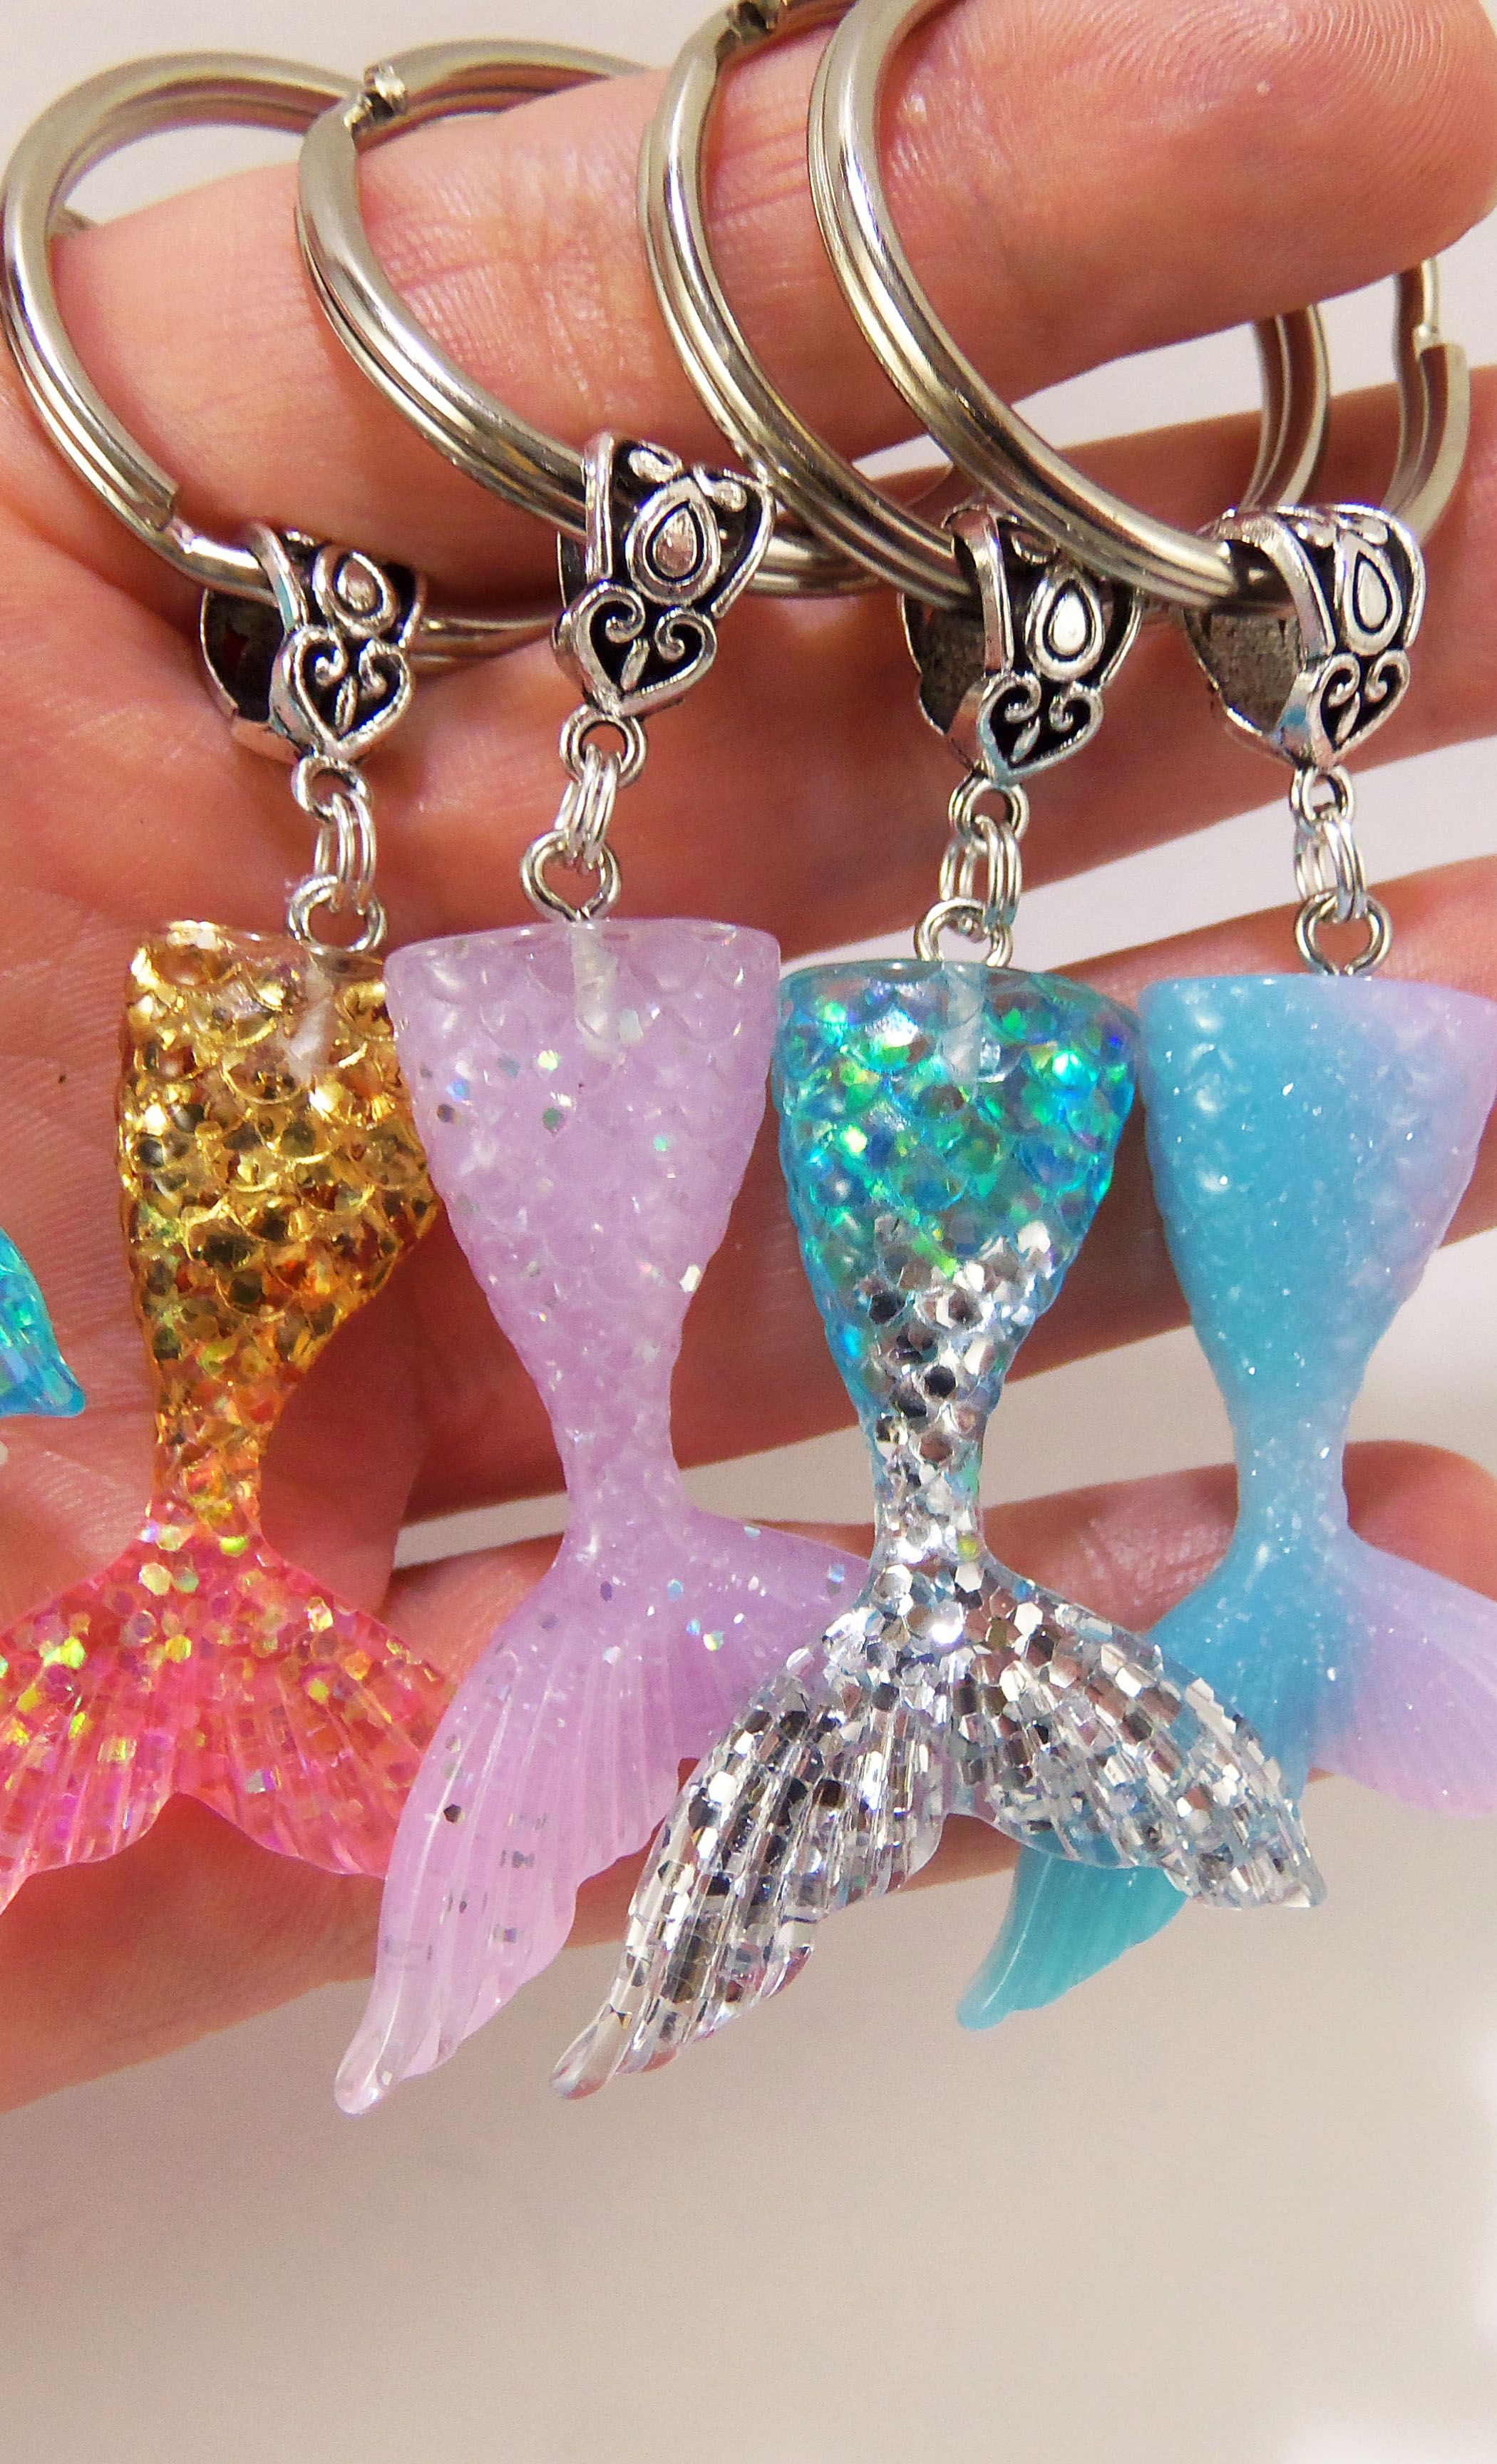 a8d52eb020 mermaid tail keychains in different sparkly colors | ♡ Pretty ...